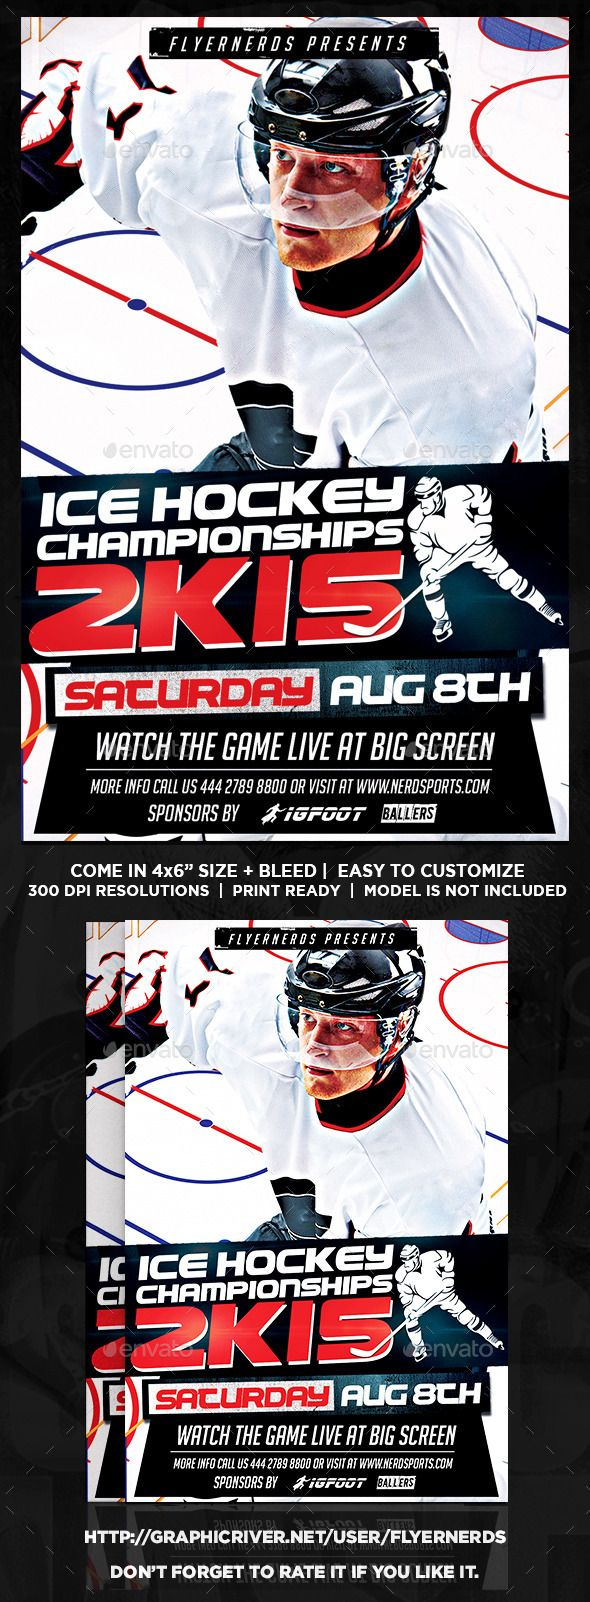 Ice hockey championships 2k15 sports flyer pinterest ice hockey ice hockey championships 2k15 sports flyer by flyernerds ice hockey championships 2k15 sports flyer description 4x6 with bleedprint ready cmyk maxwellsz